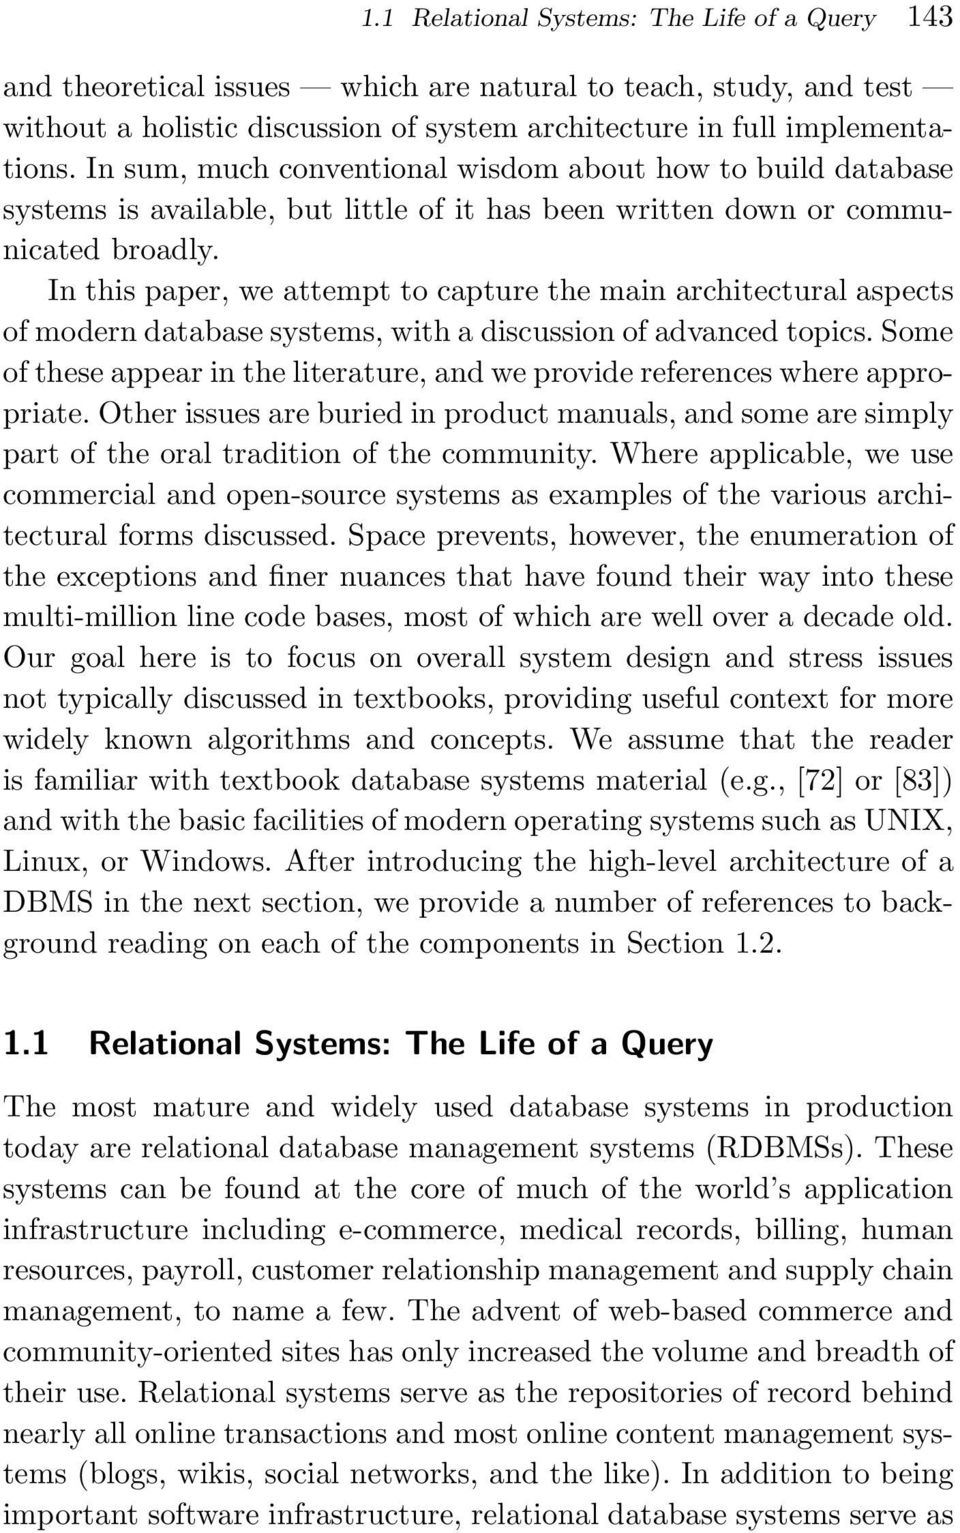 In this paper, we attempt to capture the main architectural aspects of modern database systems, with a discussion of advanced topics.